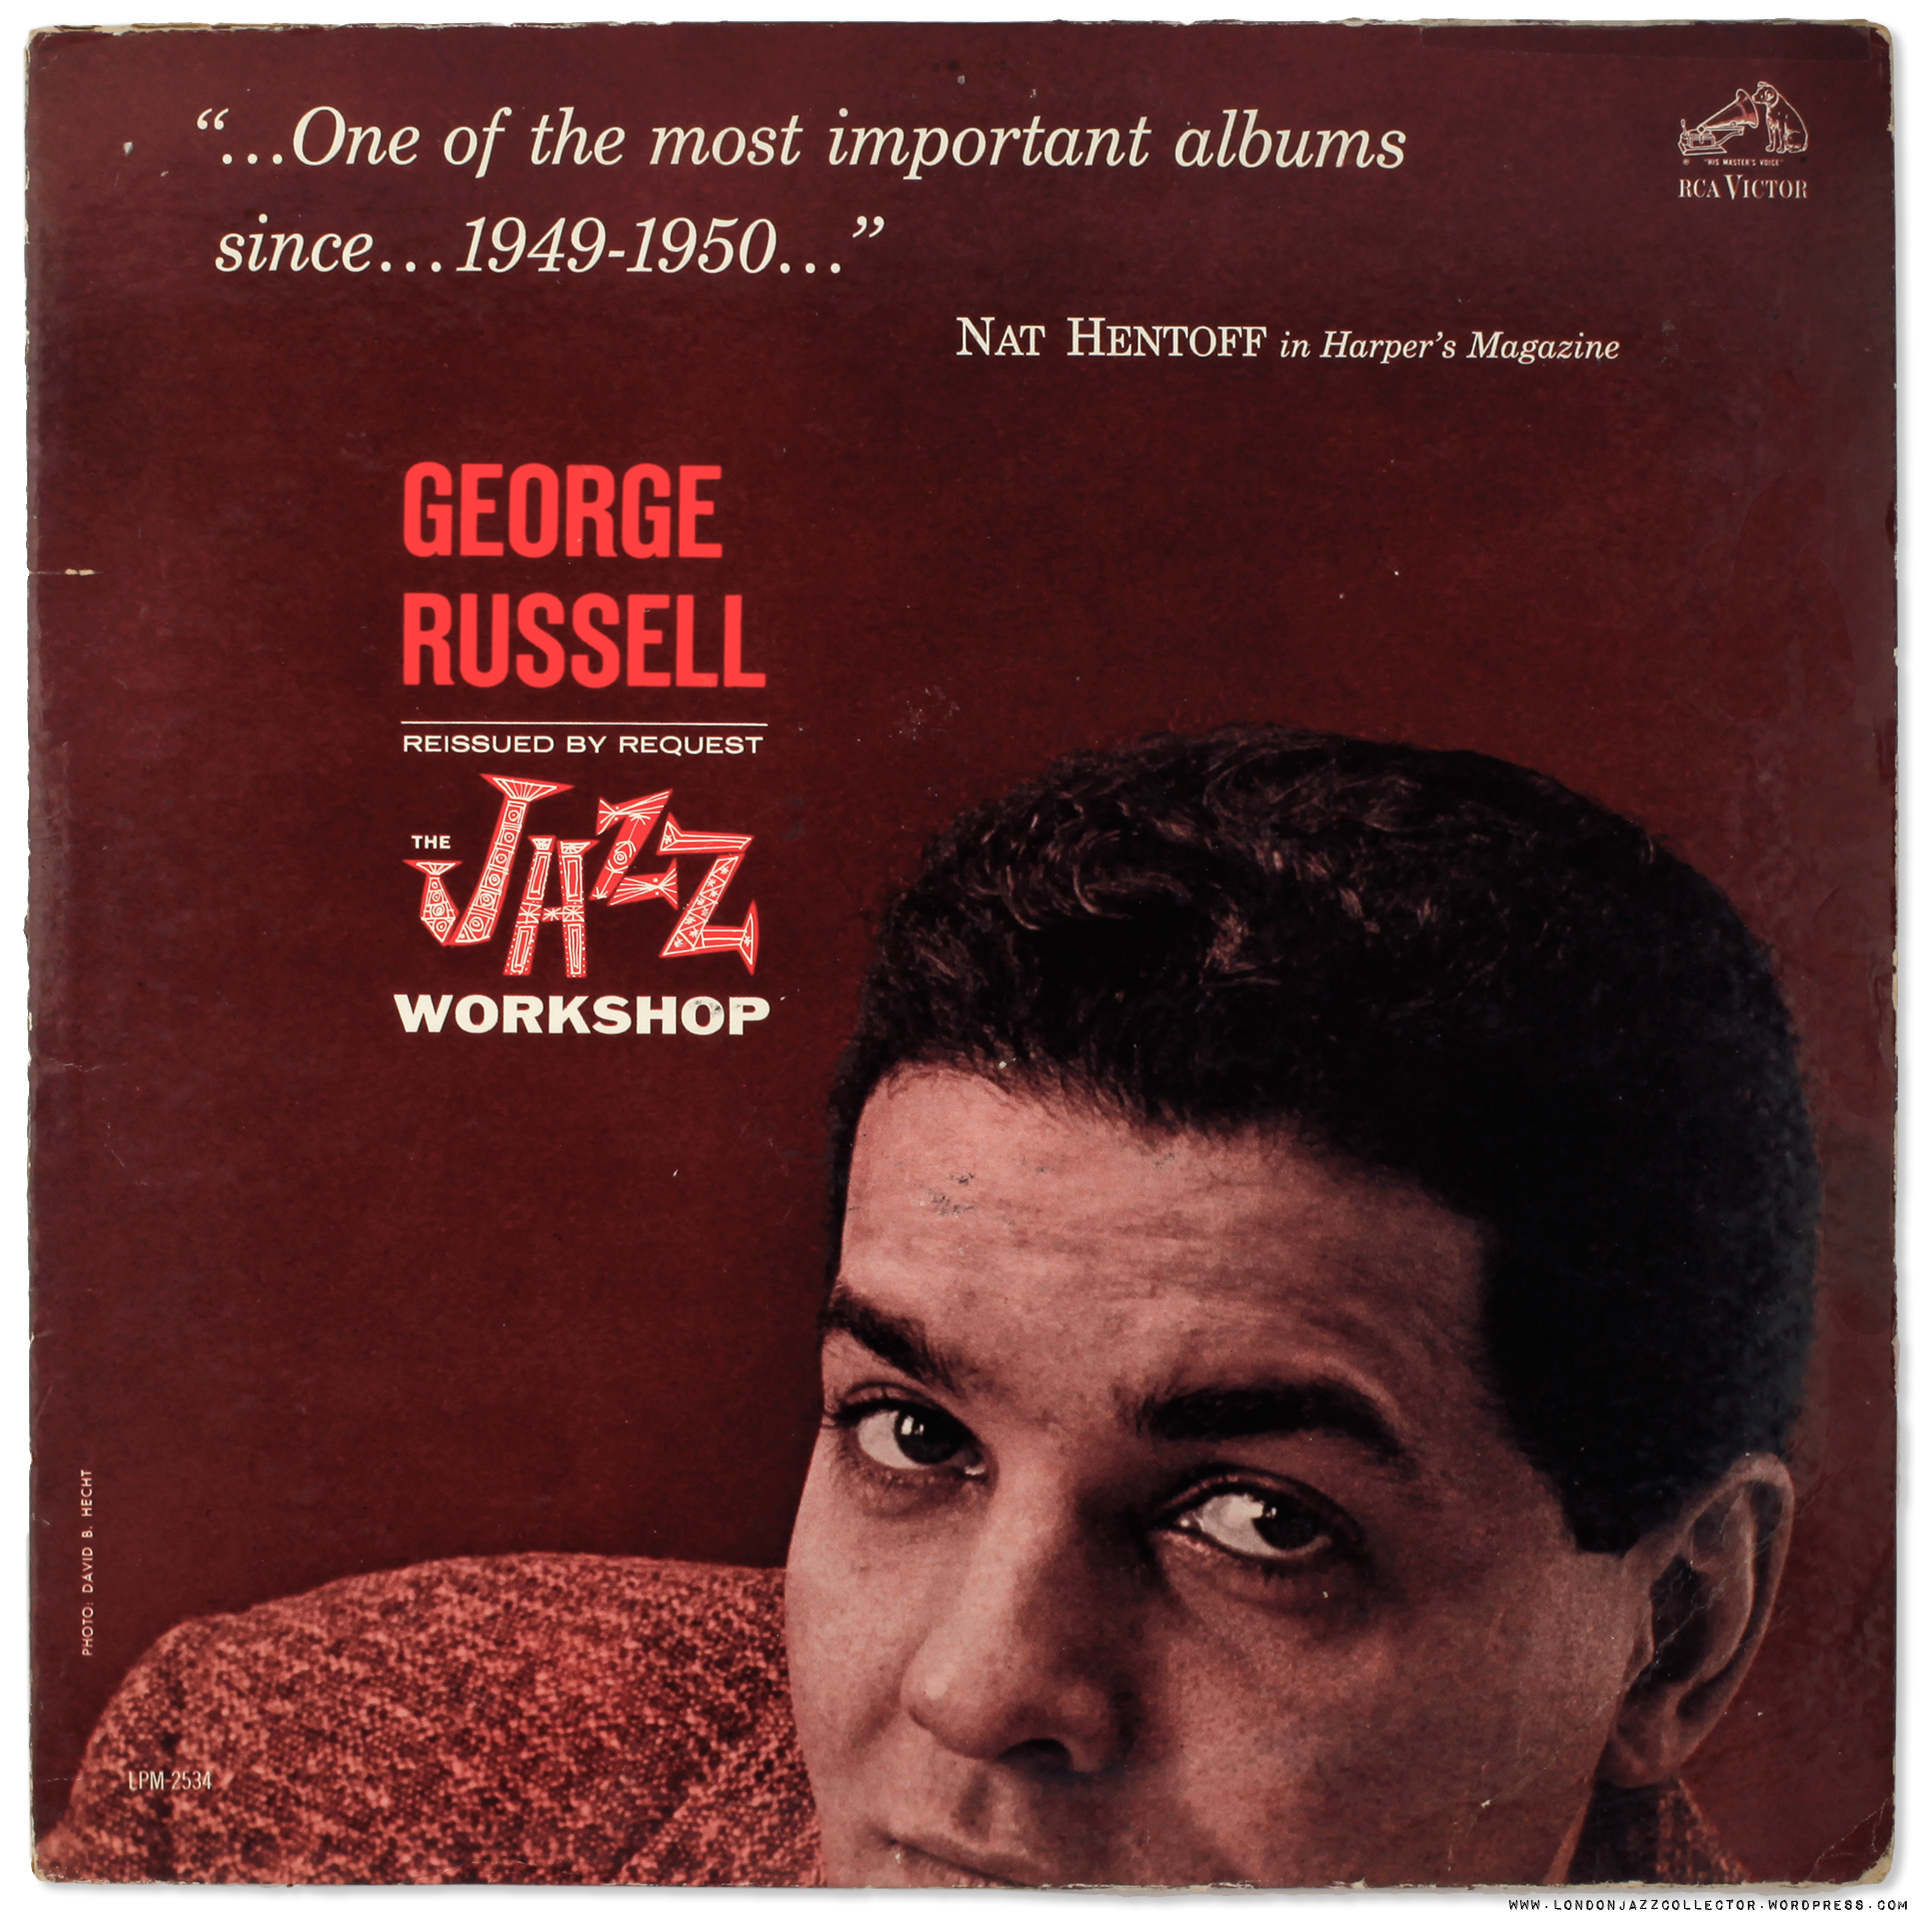 george-russell-the-jazz-workshop-cover-1